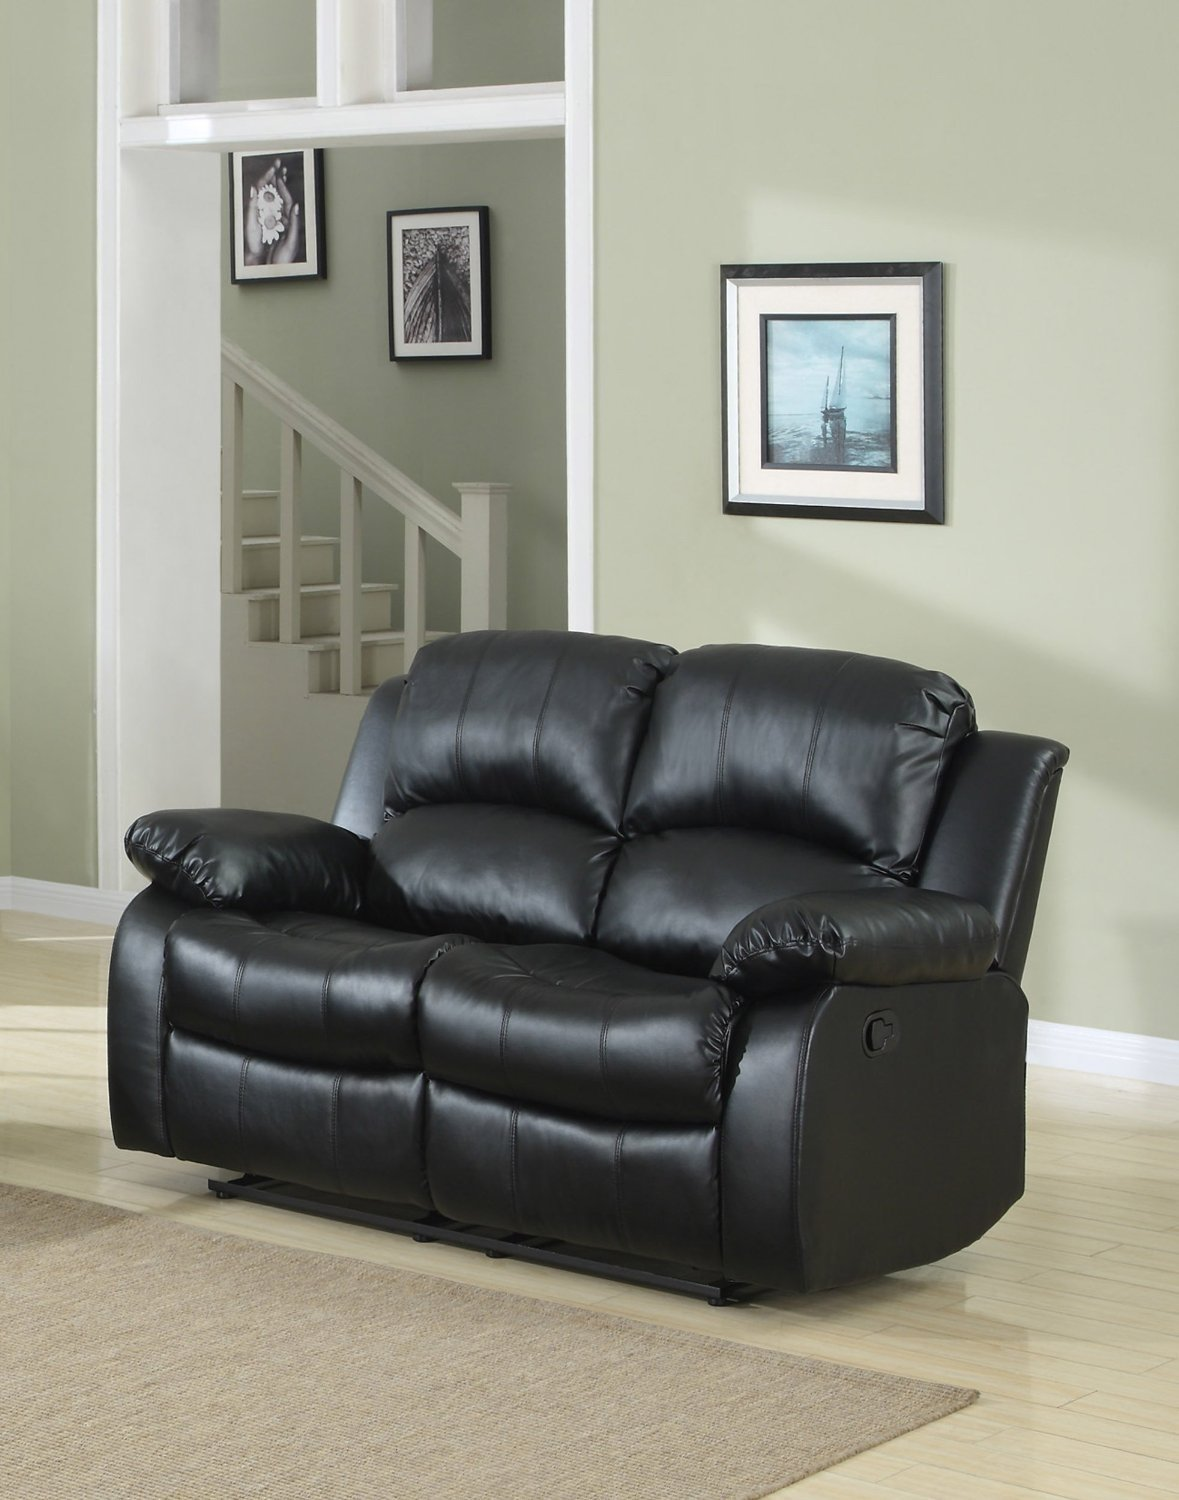 Details About Classic Double Reclining Loveseat Bonded Leather Living Room Recliner Sofa